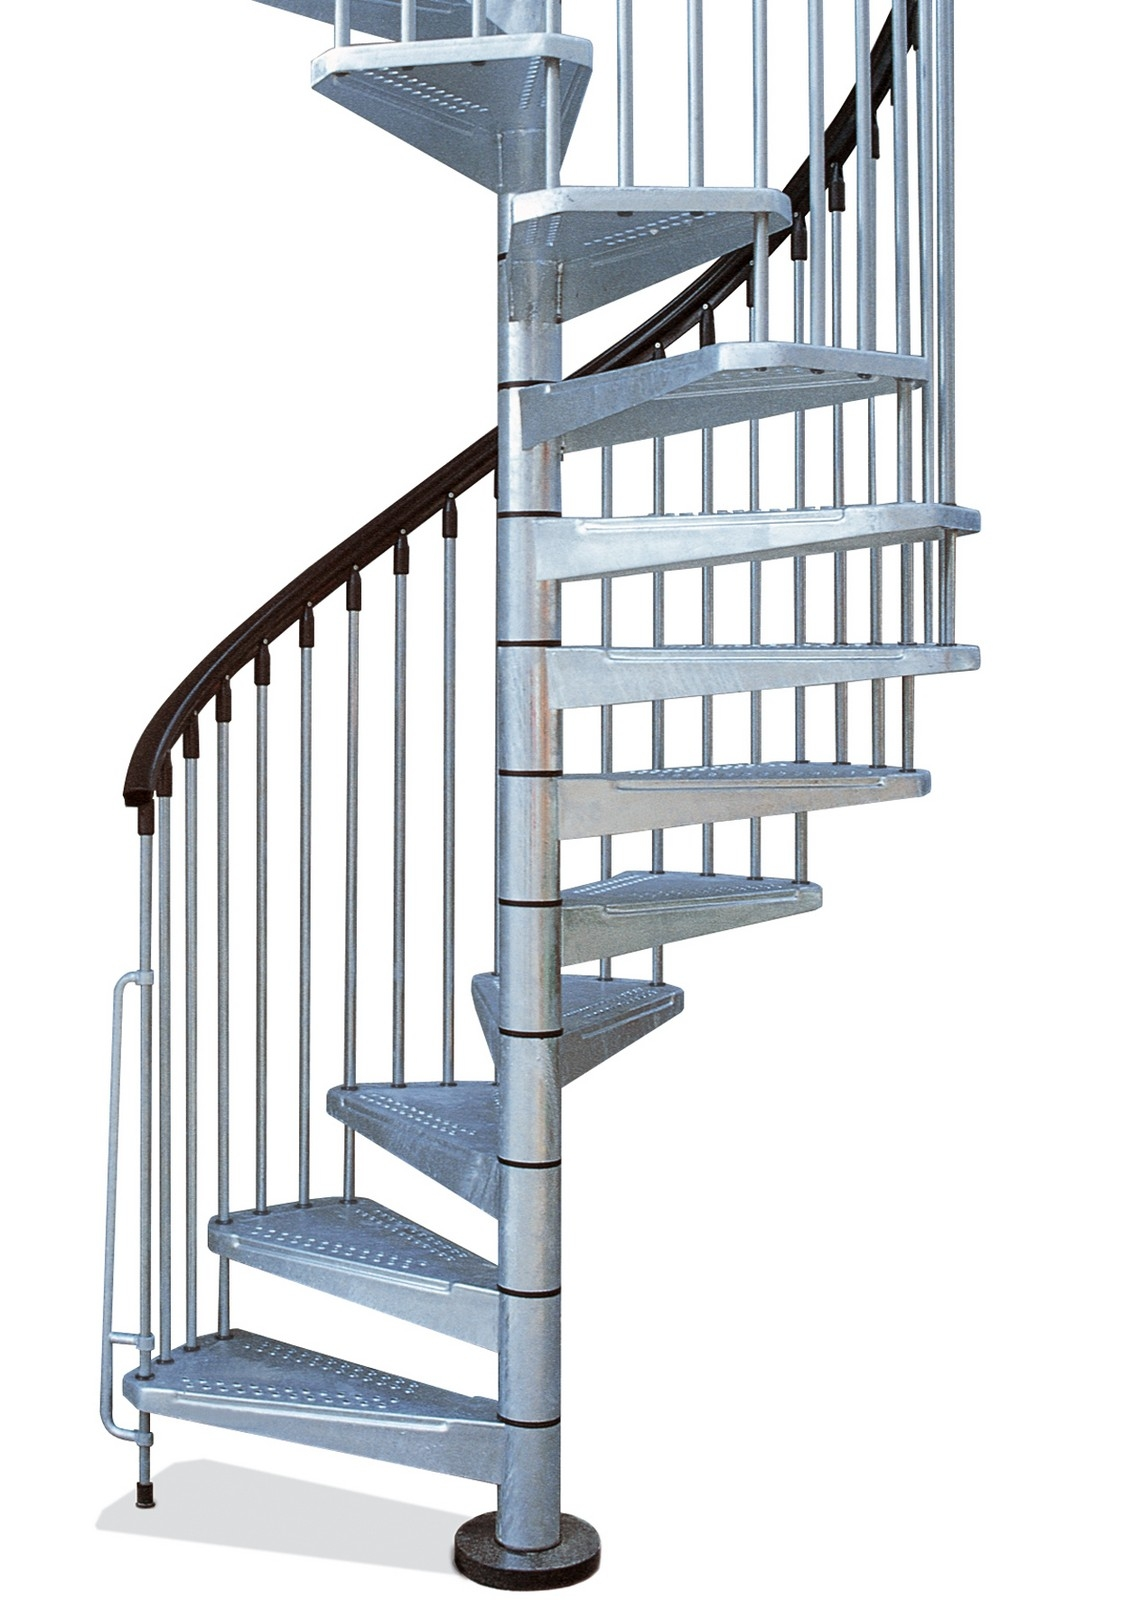 Metal Outdoor Spiral Staircase Exterior Stairs | Exterior Metal Spiral Staircase | Rustic Metal | Deck | Crystal Handrail | Bar Modern | Railing